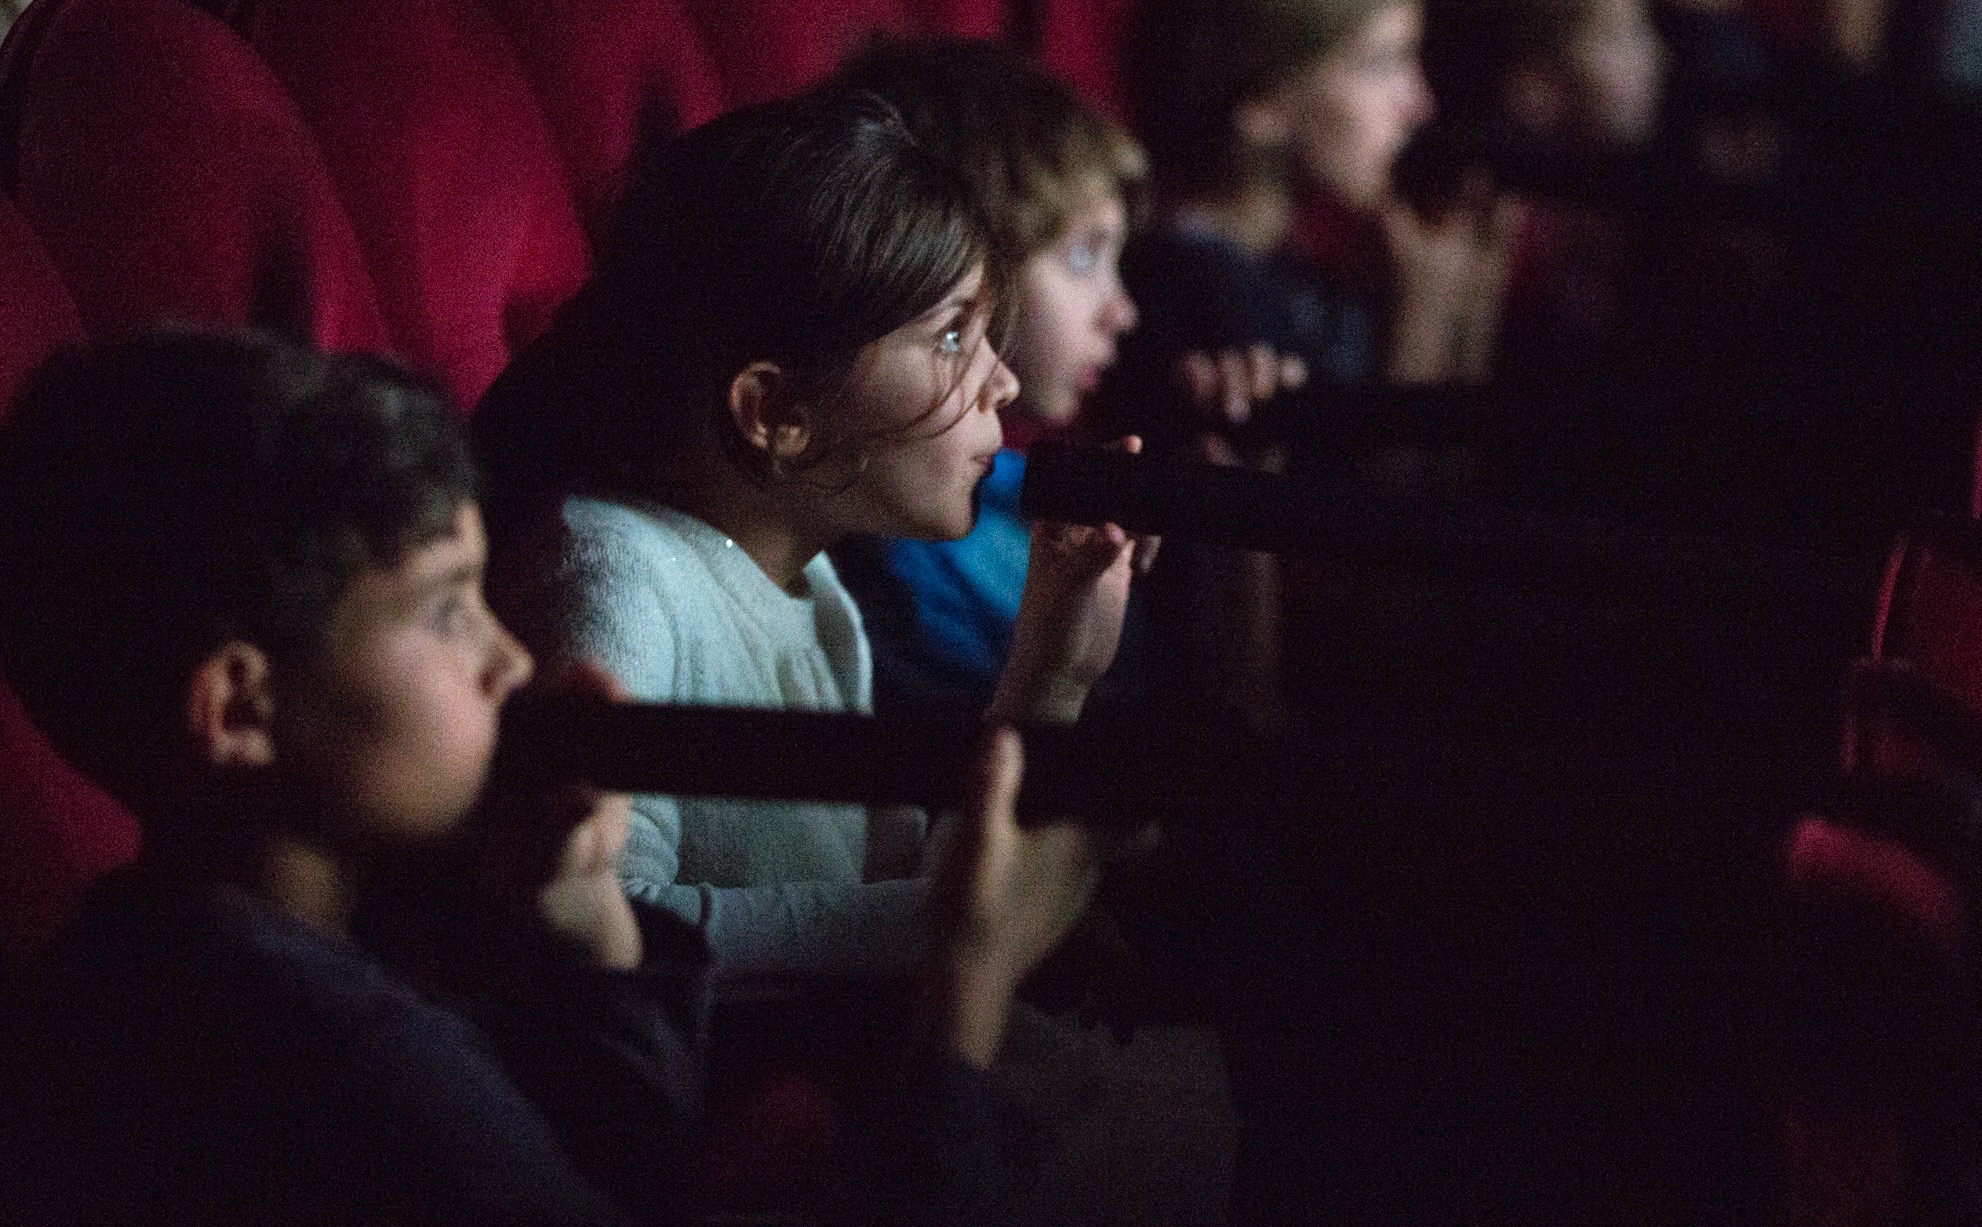 Only the children see, and only the children speak, in 'Blind Cinema.' (Photo courtesy of Britt Hatzius)